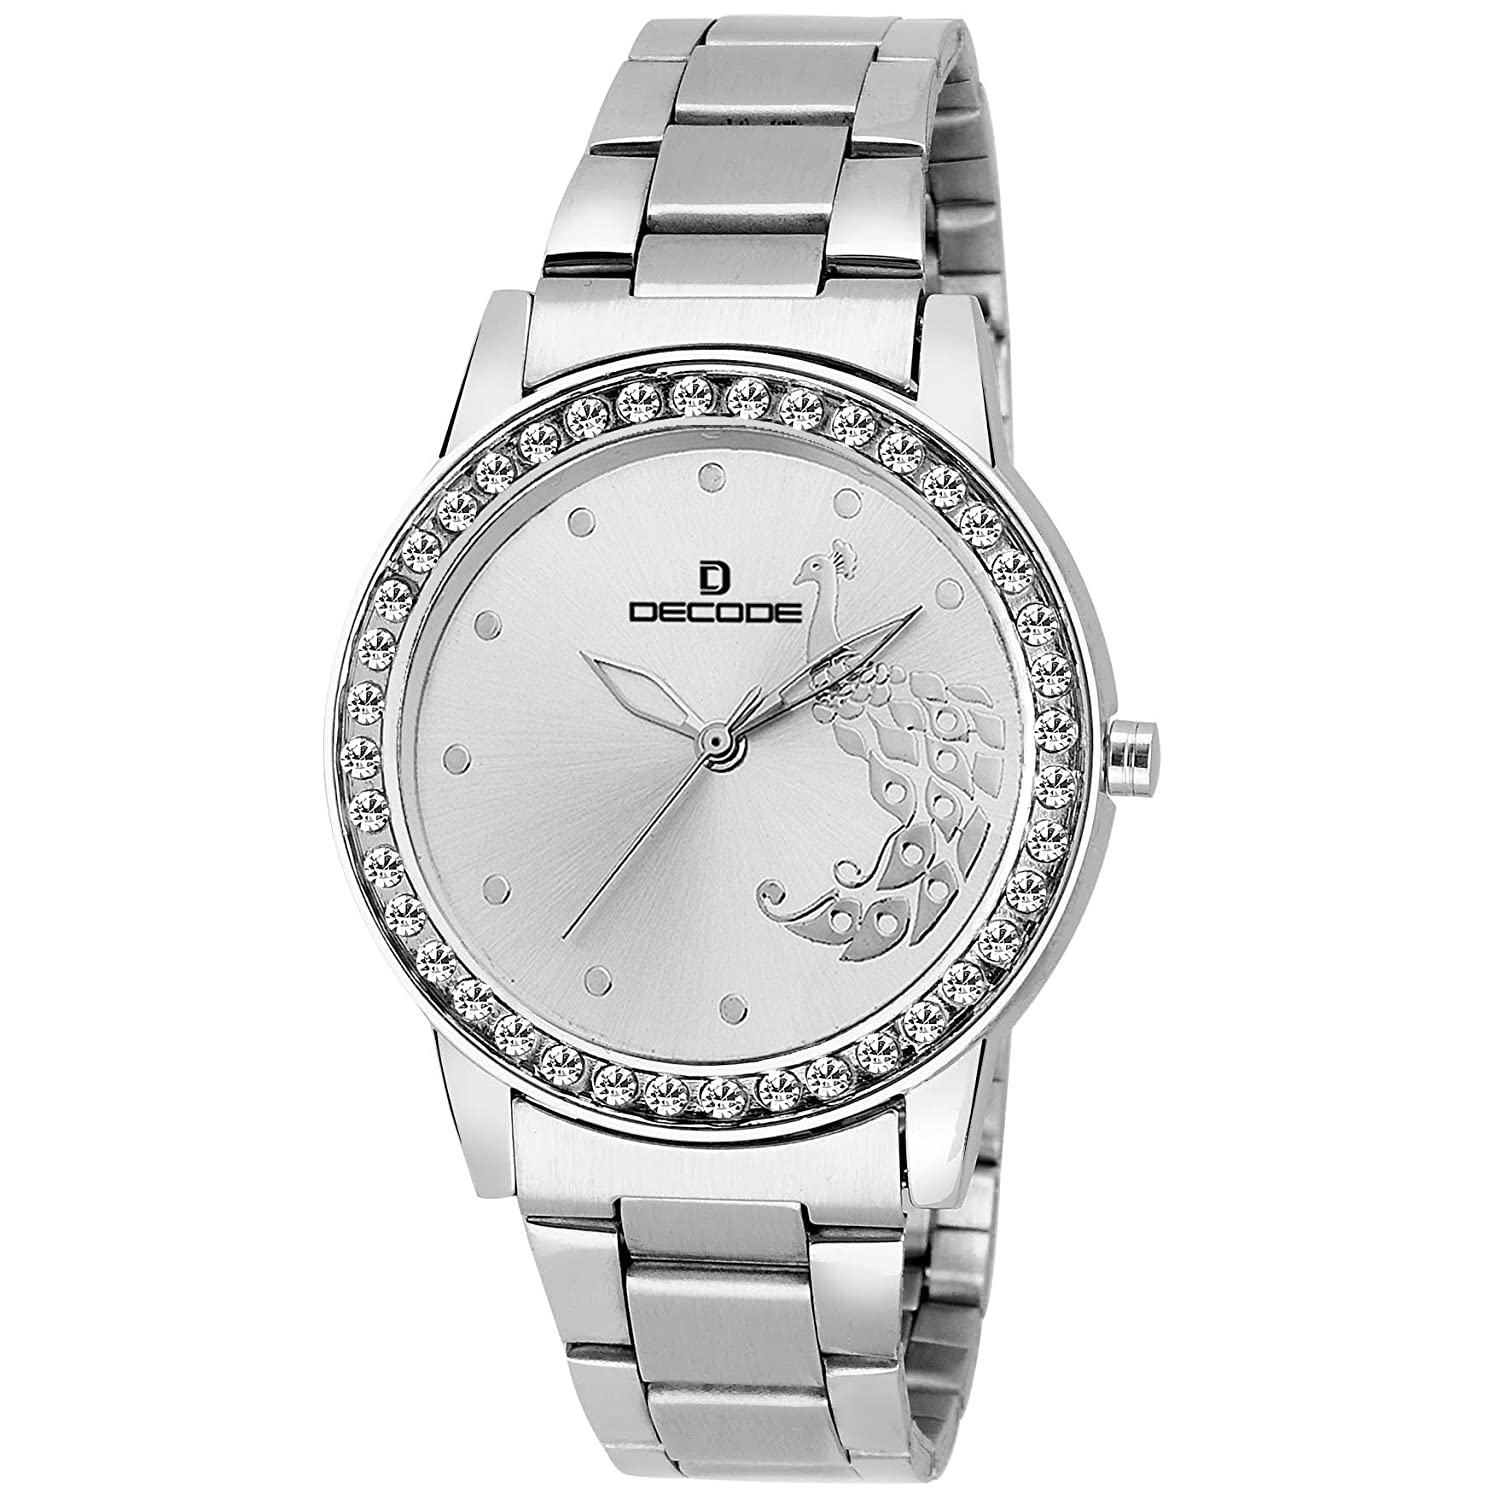 Decode Analogue Silver Dial Women S Watch Ladies Lr 2120 Chain Silver